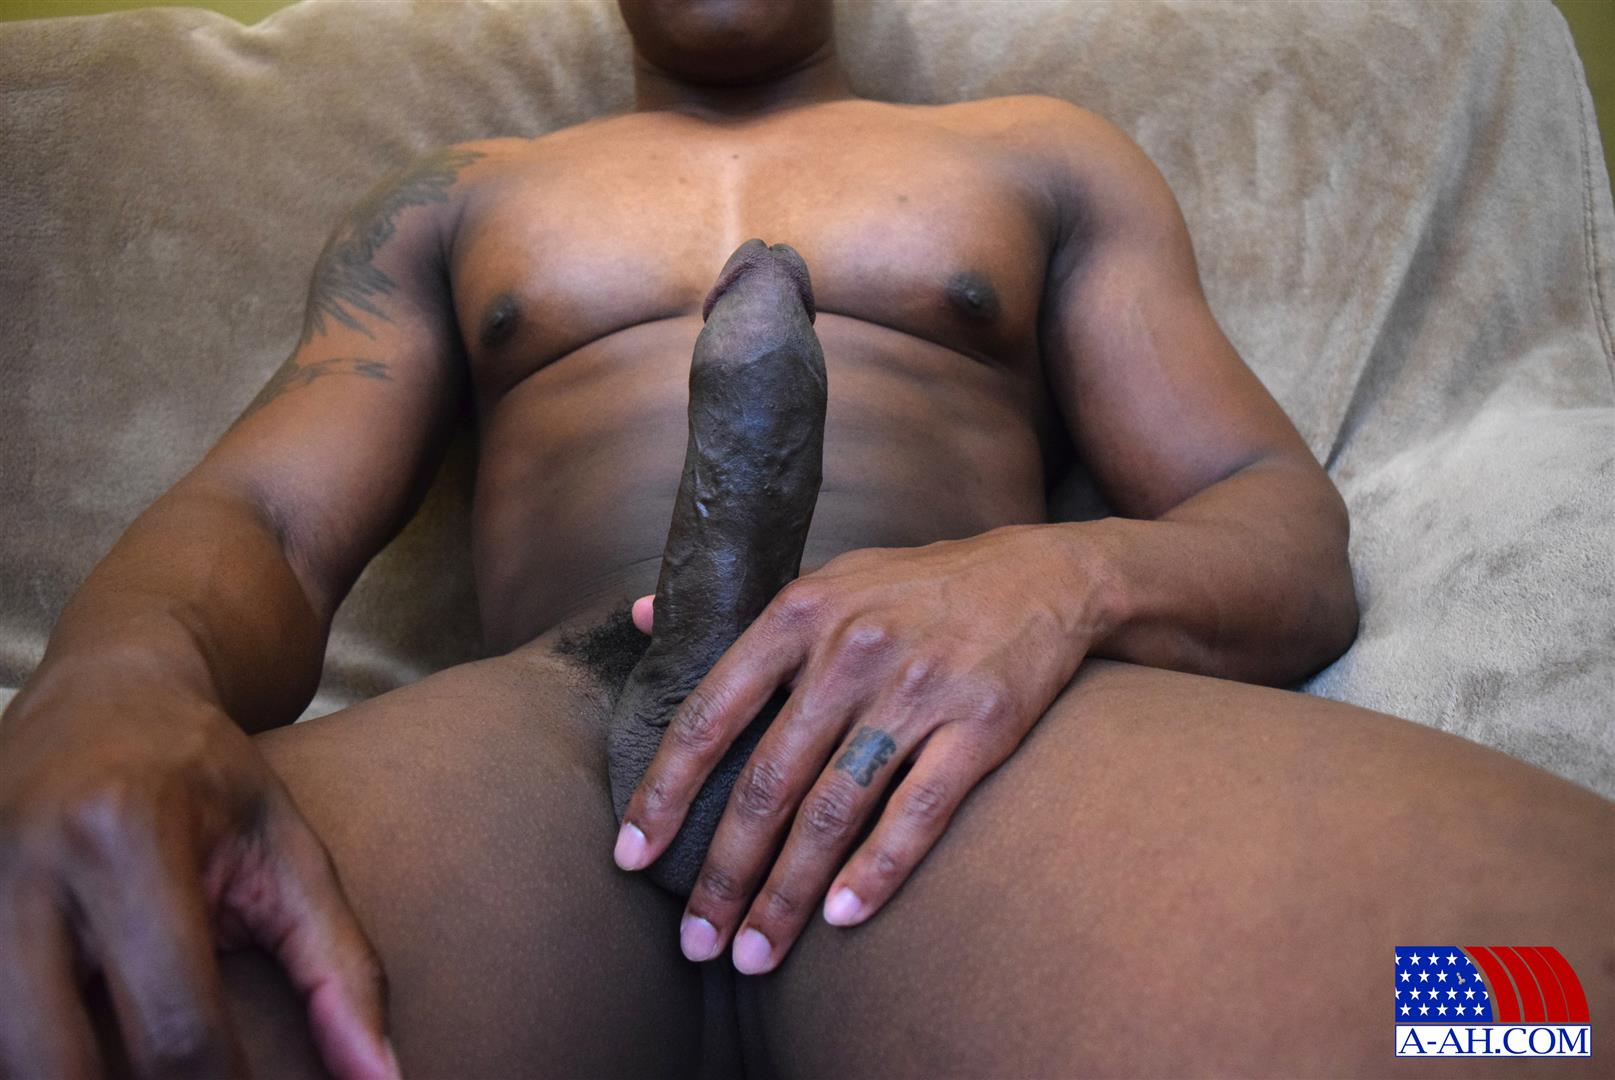 All-American-Heroes-Sean-Muscle-Navy-Petty-Officer-Jerking-Big-Black-Cock-Amateur-Gay-Porn-11 Big Muscular Black Navy Petty Officer Jerking His Big Black Cock